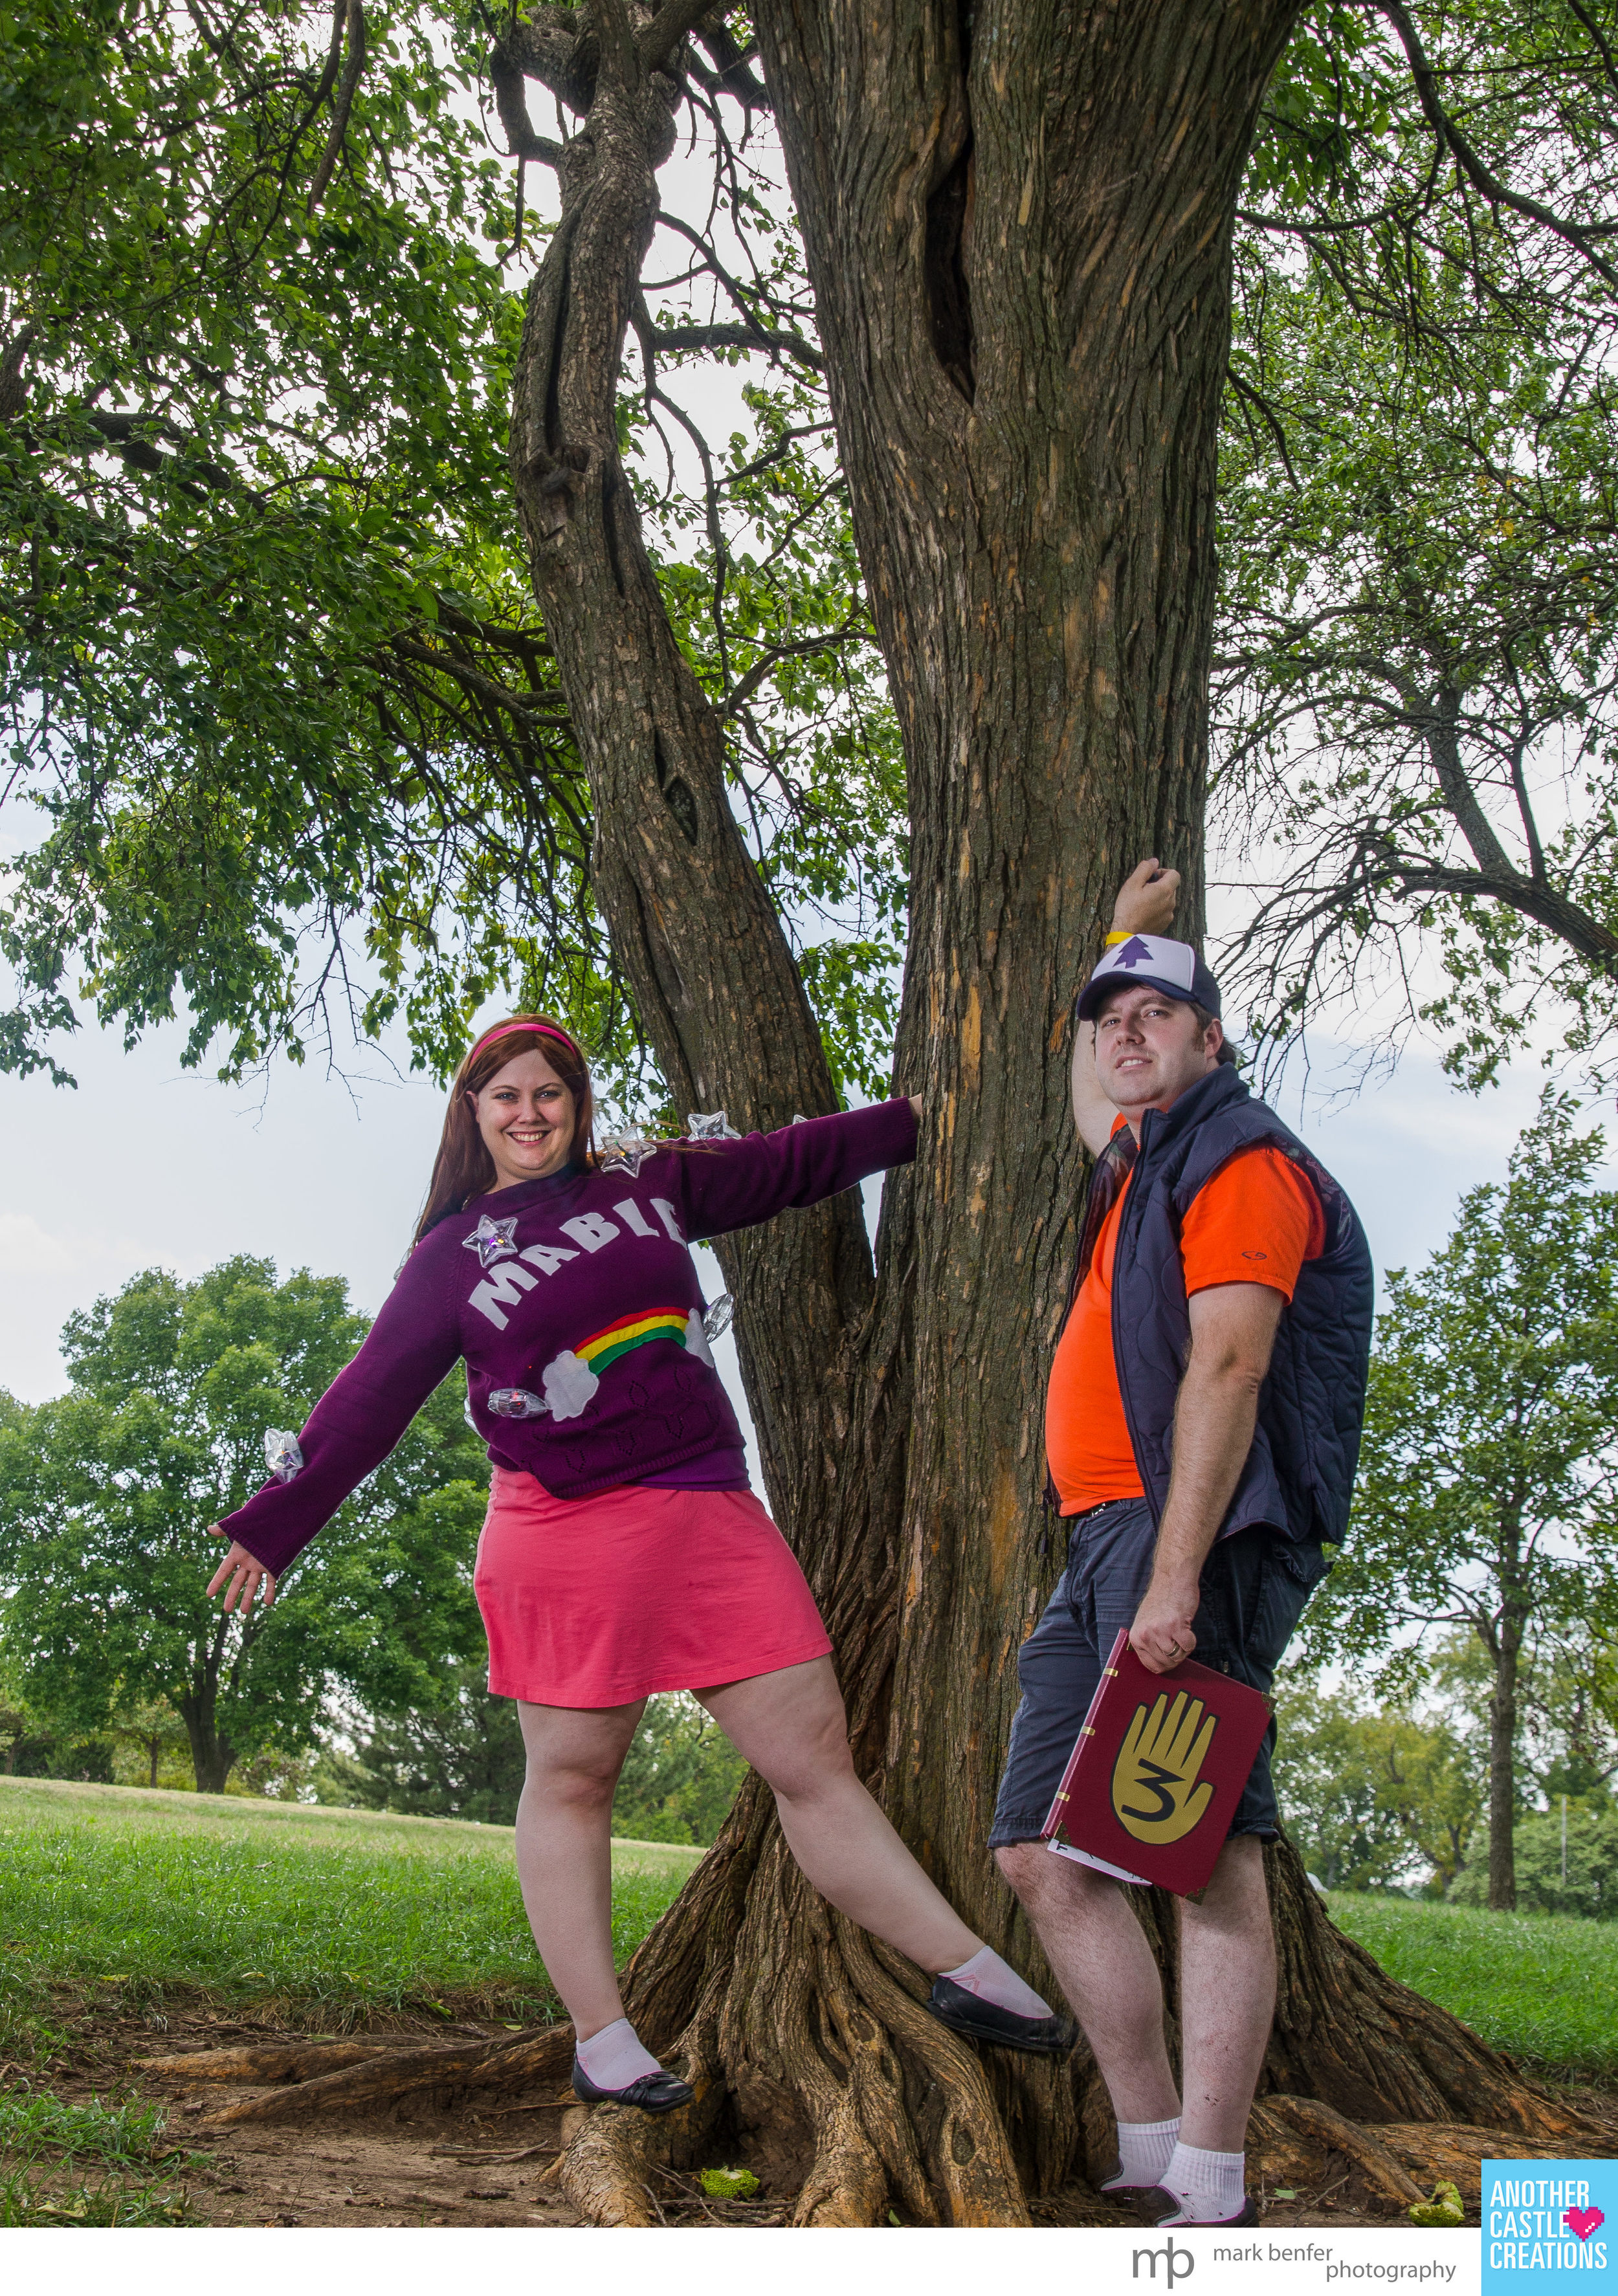 Lydia Heartwell as Mable Pines and The Walking Farnsworth as Dipper Pines at the first evr TOPCON in 2014.